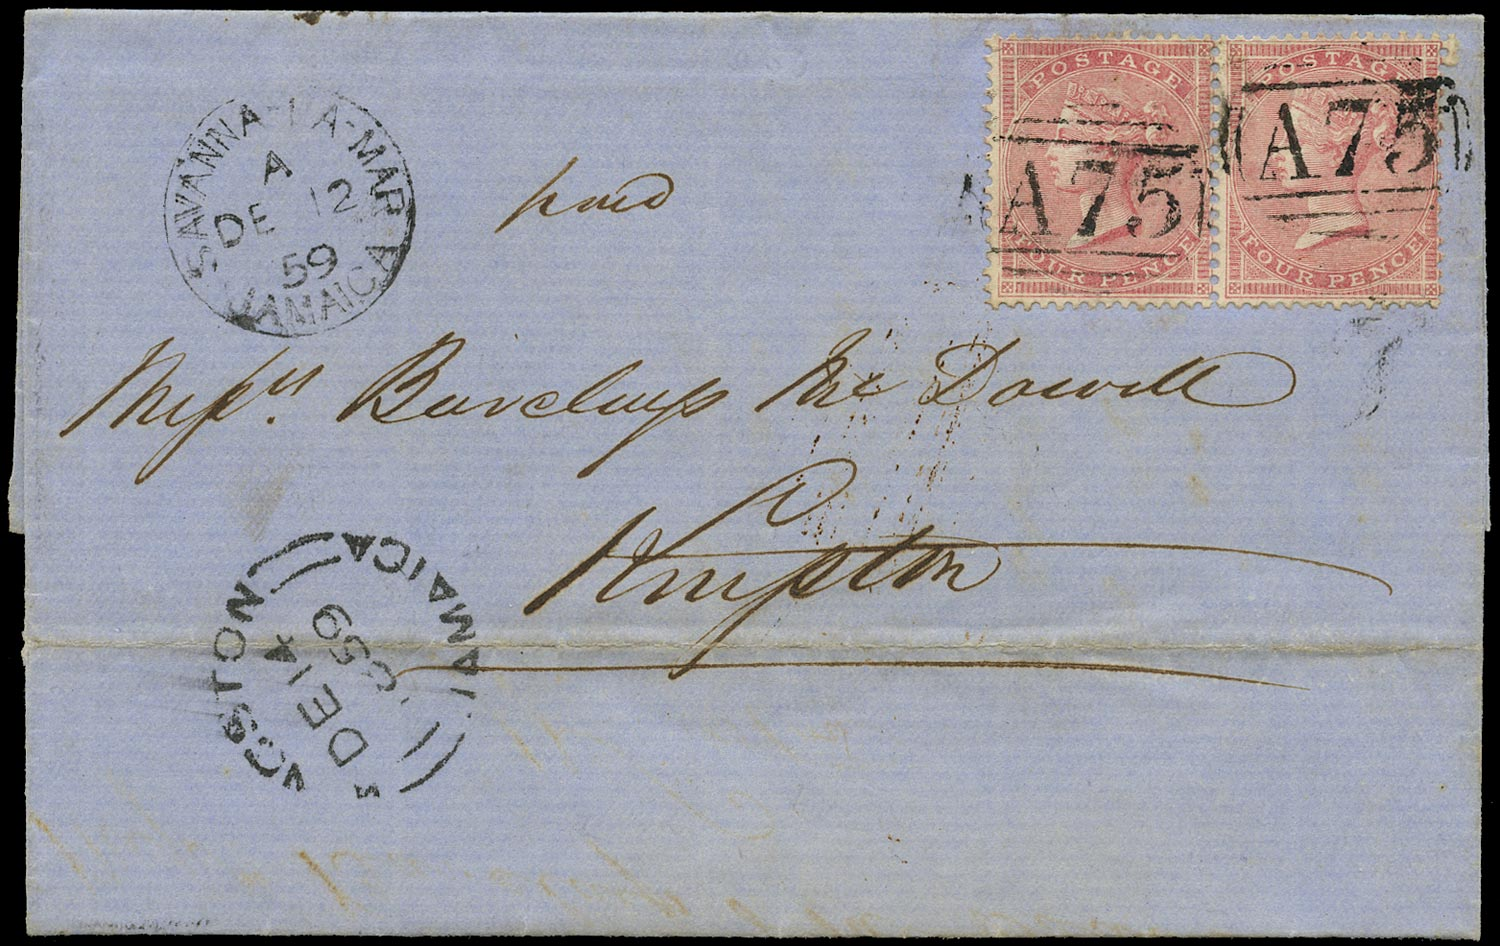 JAMAICA 1859  SGZ166 Cover from Savannah-La-Mar to Kingston franked by GB 4d rose pair